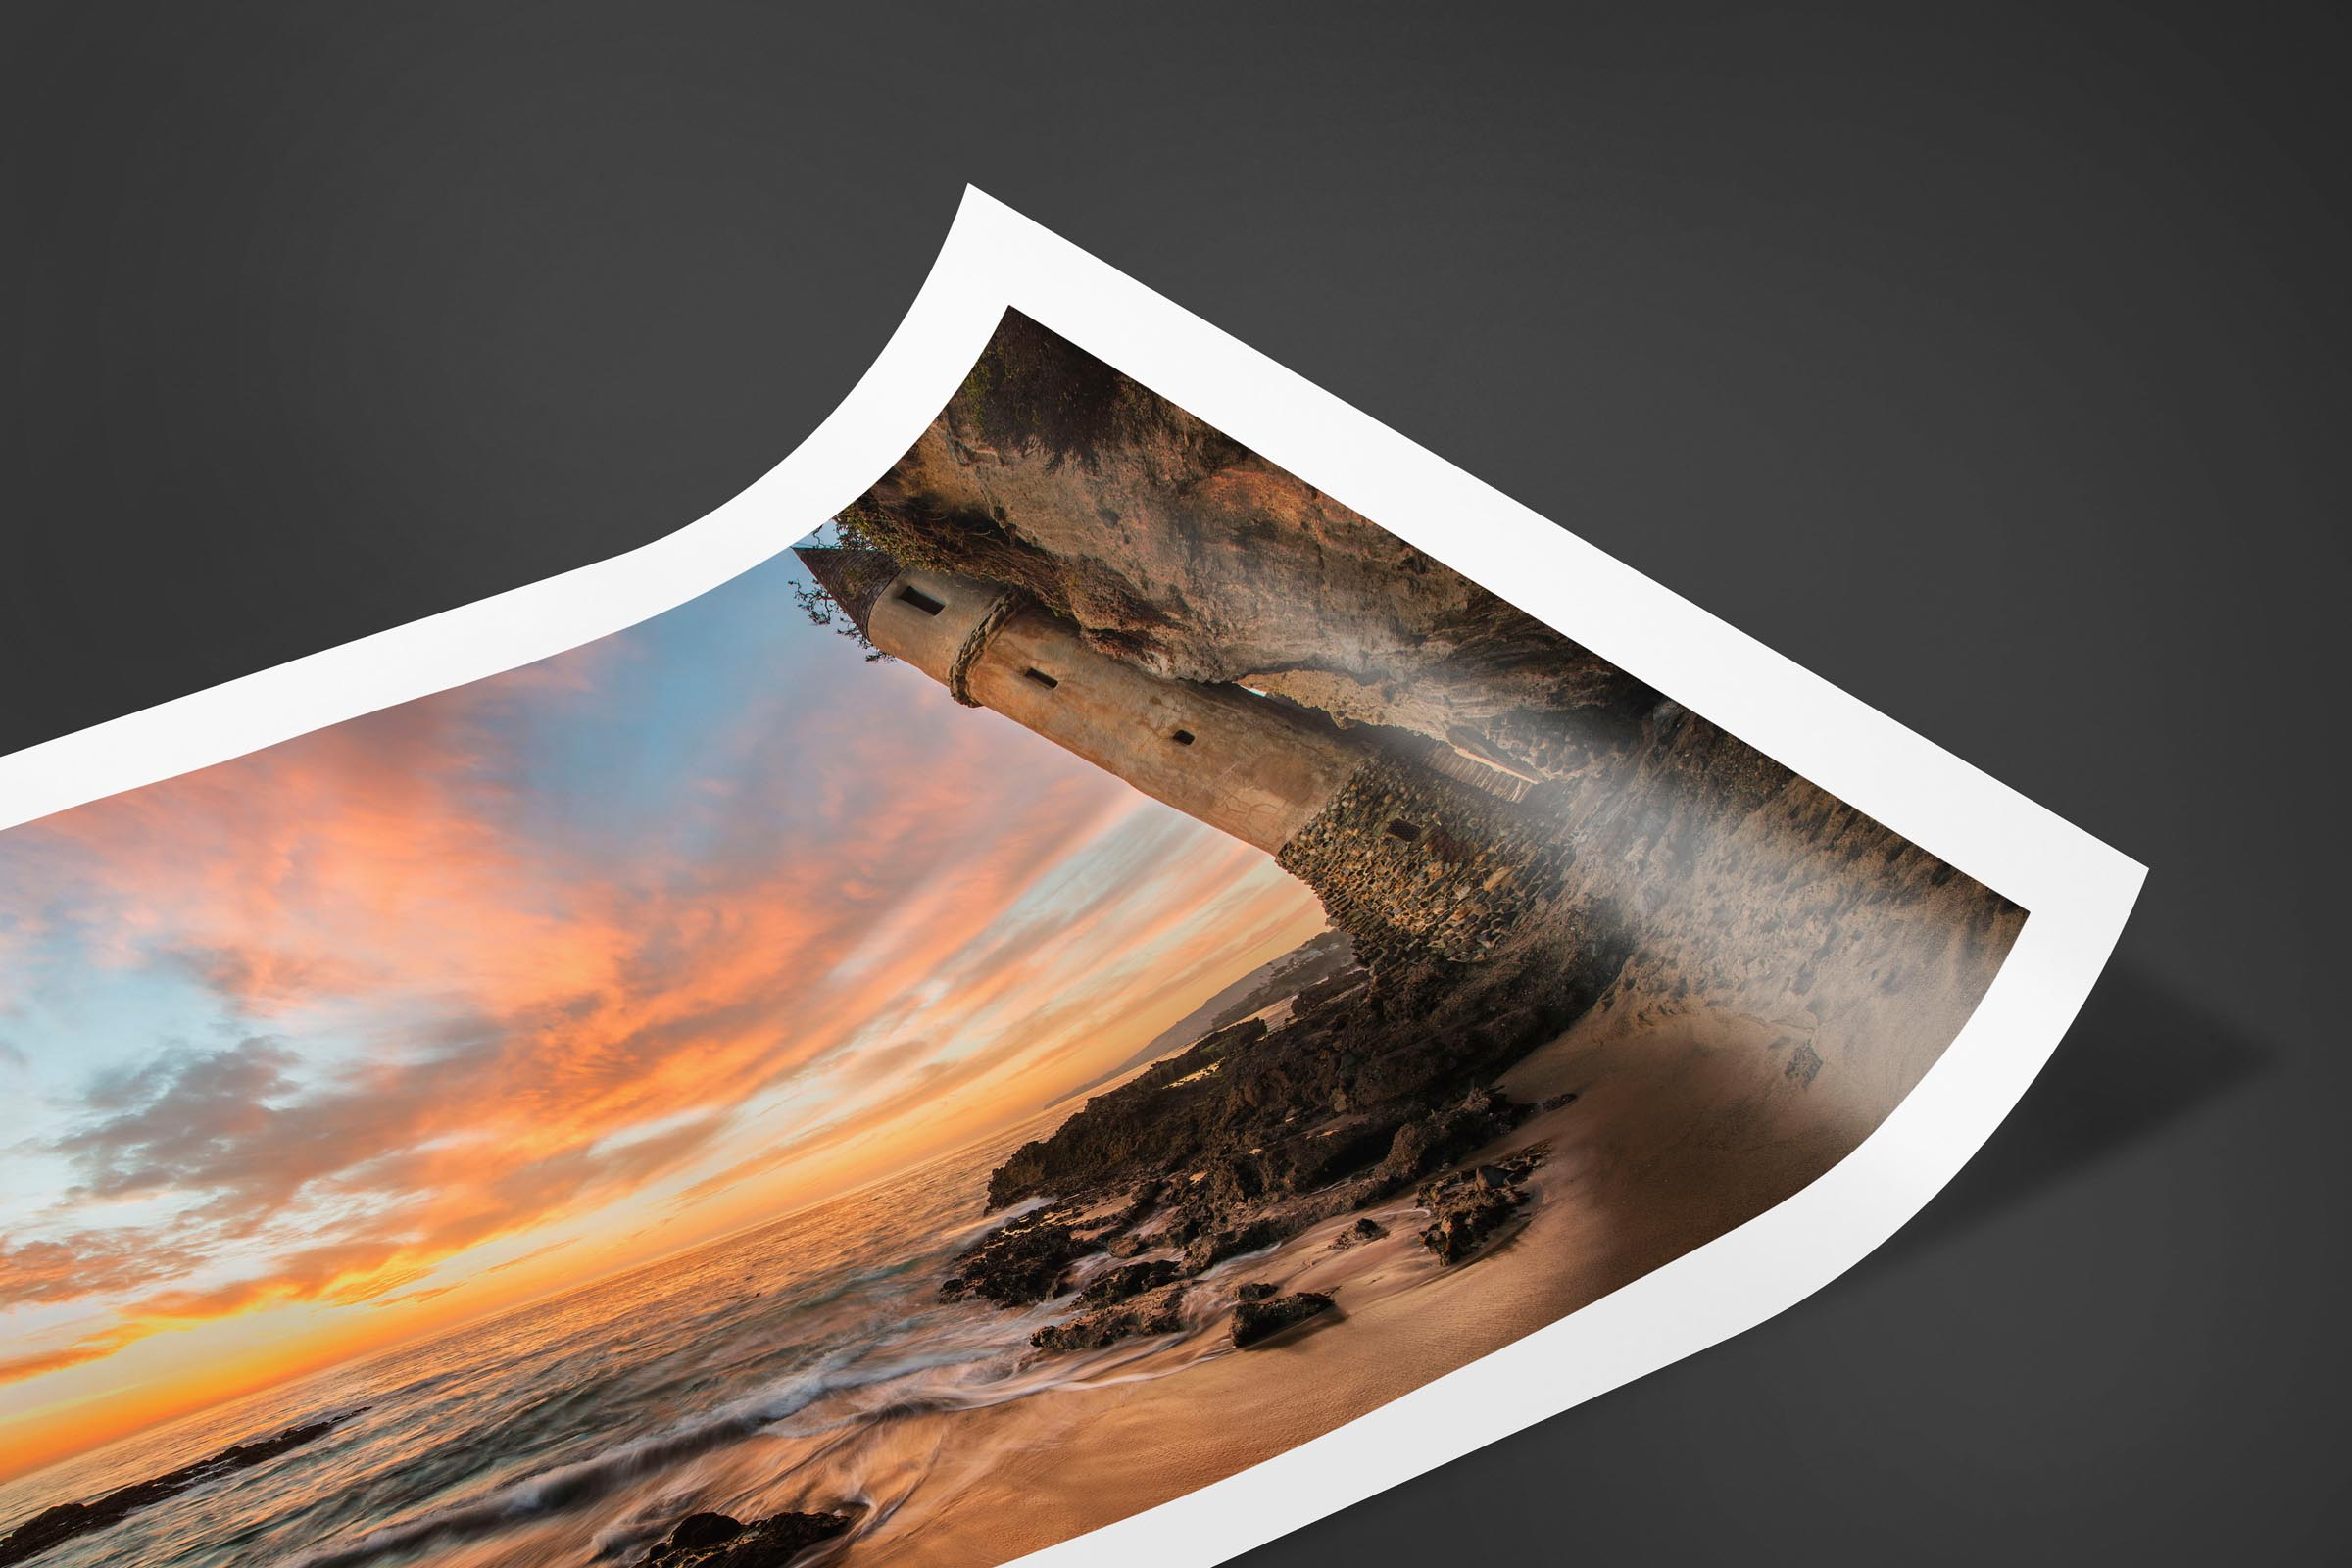 Fine art limited edition print of Victoria Castle in Laguna Beach, California by Brent Goldman Photography